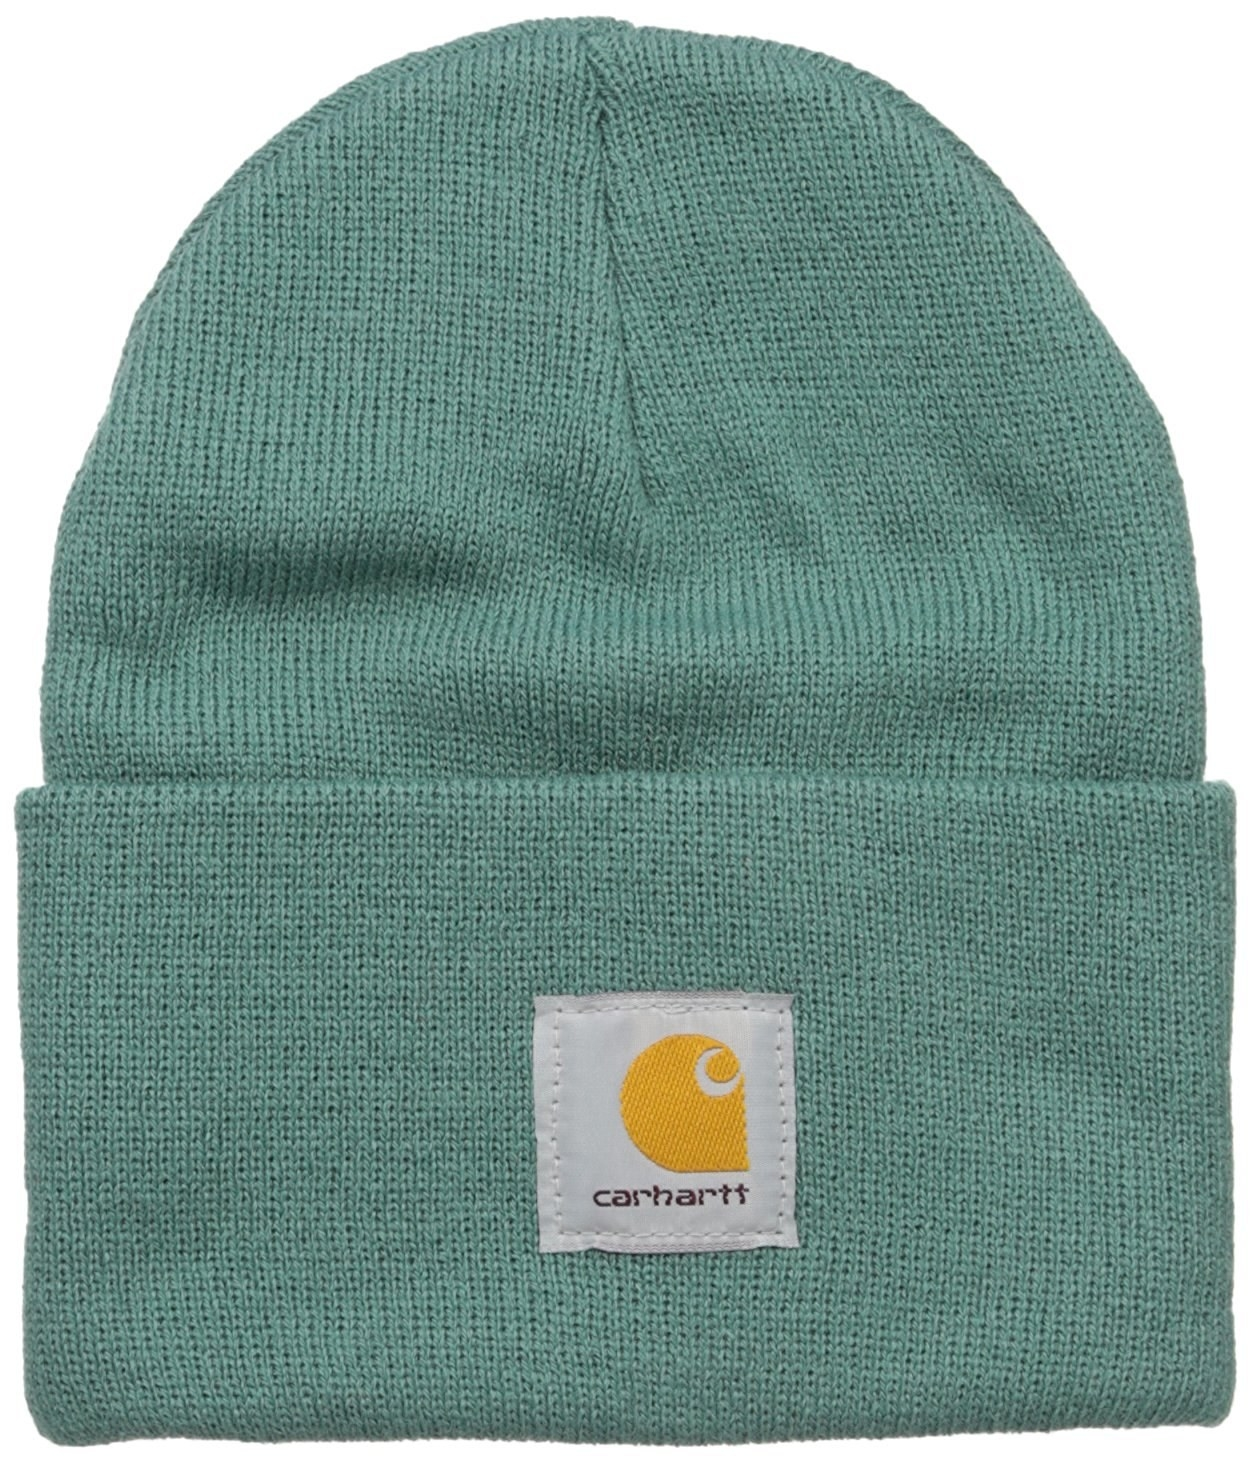 170efb643e1 A reliable Carhartt beanie guaranteed to keep your noggin warm.